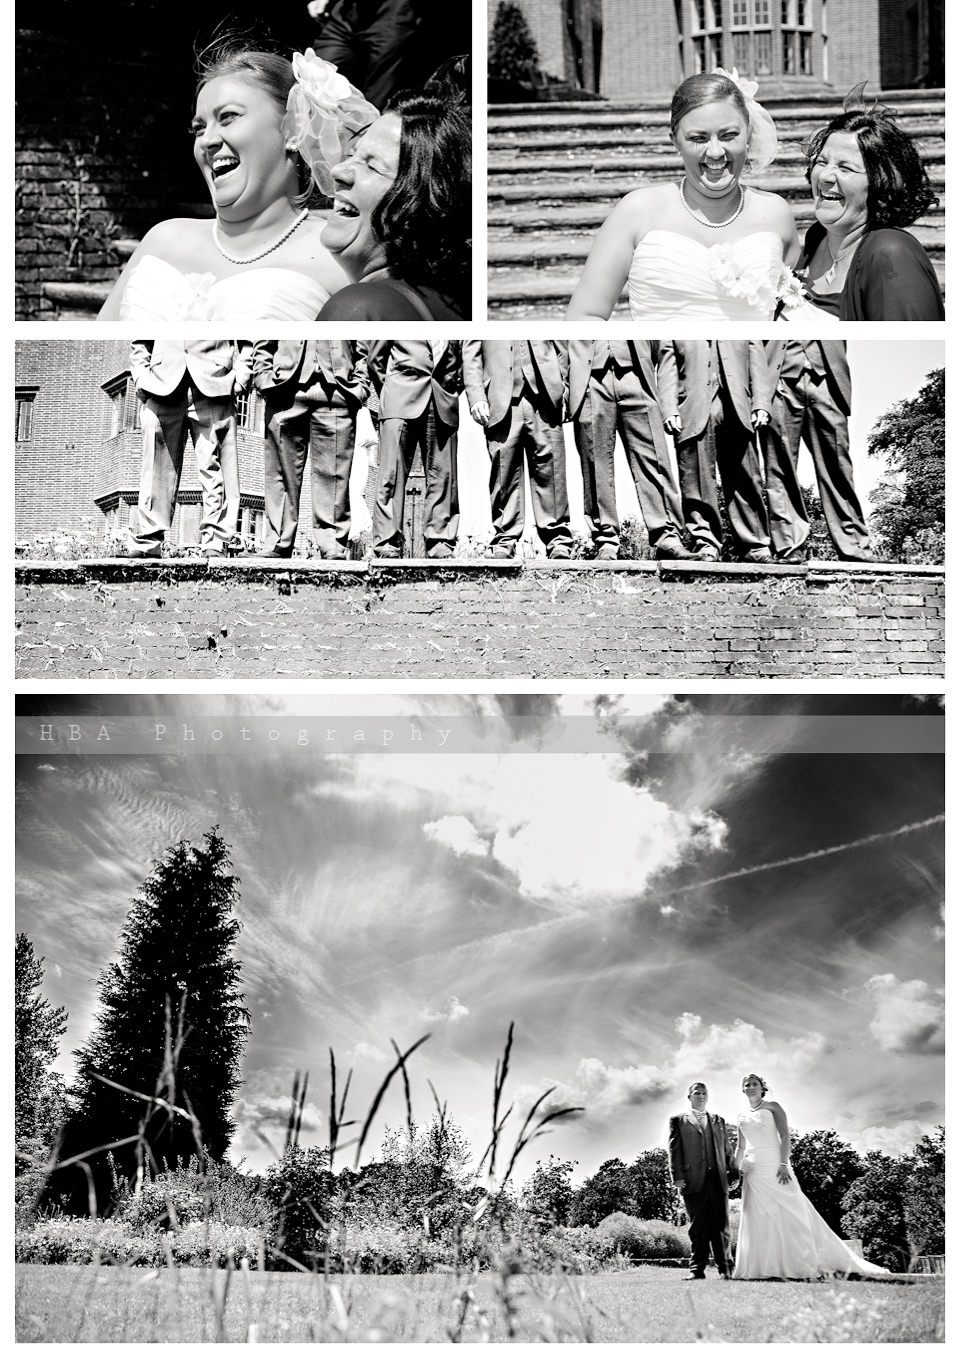 The wedding of Sam & Alan at New Place, Southampton. By contemporary photographers HBA Photography. Photos in the grounds of New Place